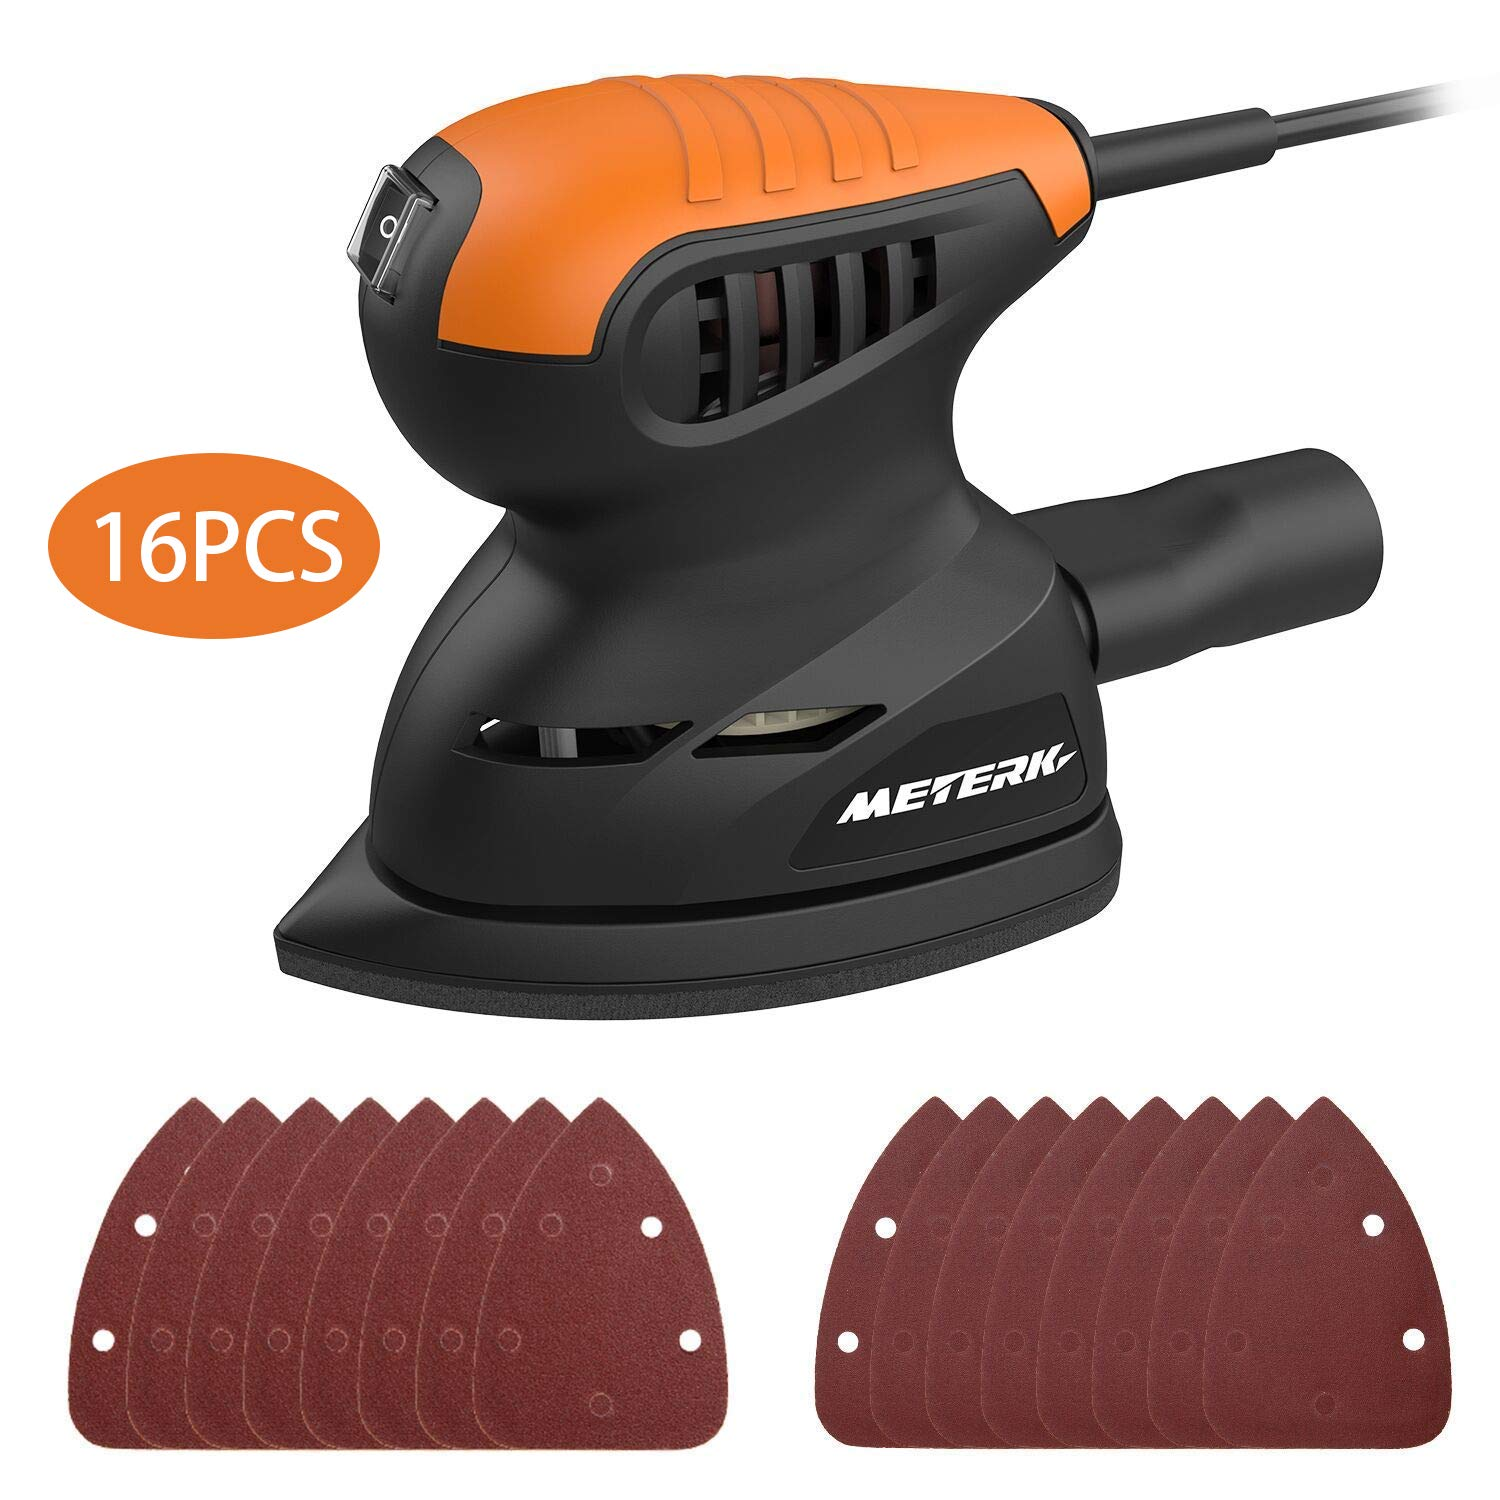 Random Orbit Sander, Meterk 13500RPM Mouse Detail Sander Wall Putty Polishing Machines Sander with 16PCS Sandpapers Dust Collection Port for Tight Spaces Sanding in Home Decoration and DIY Working by Meterk